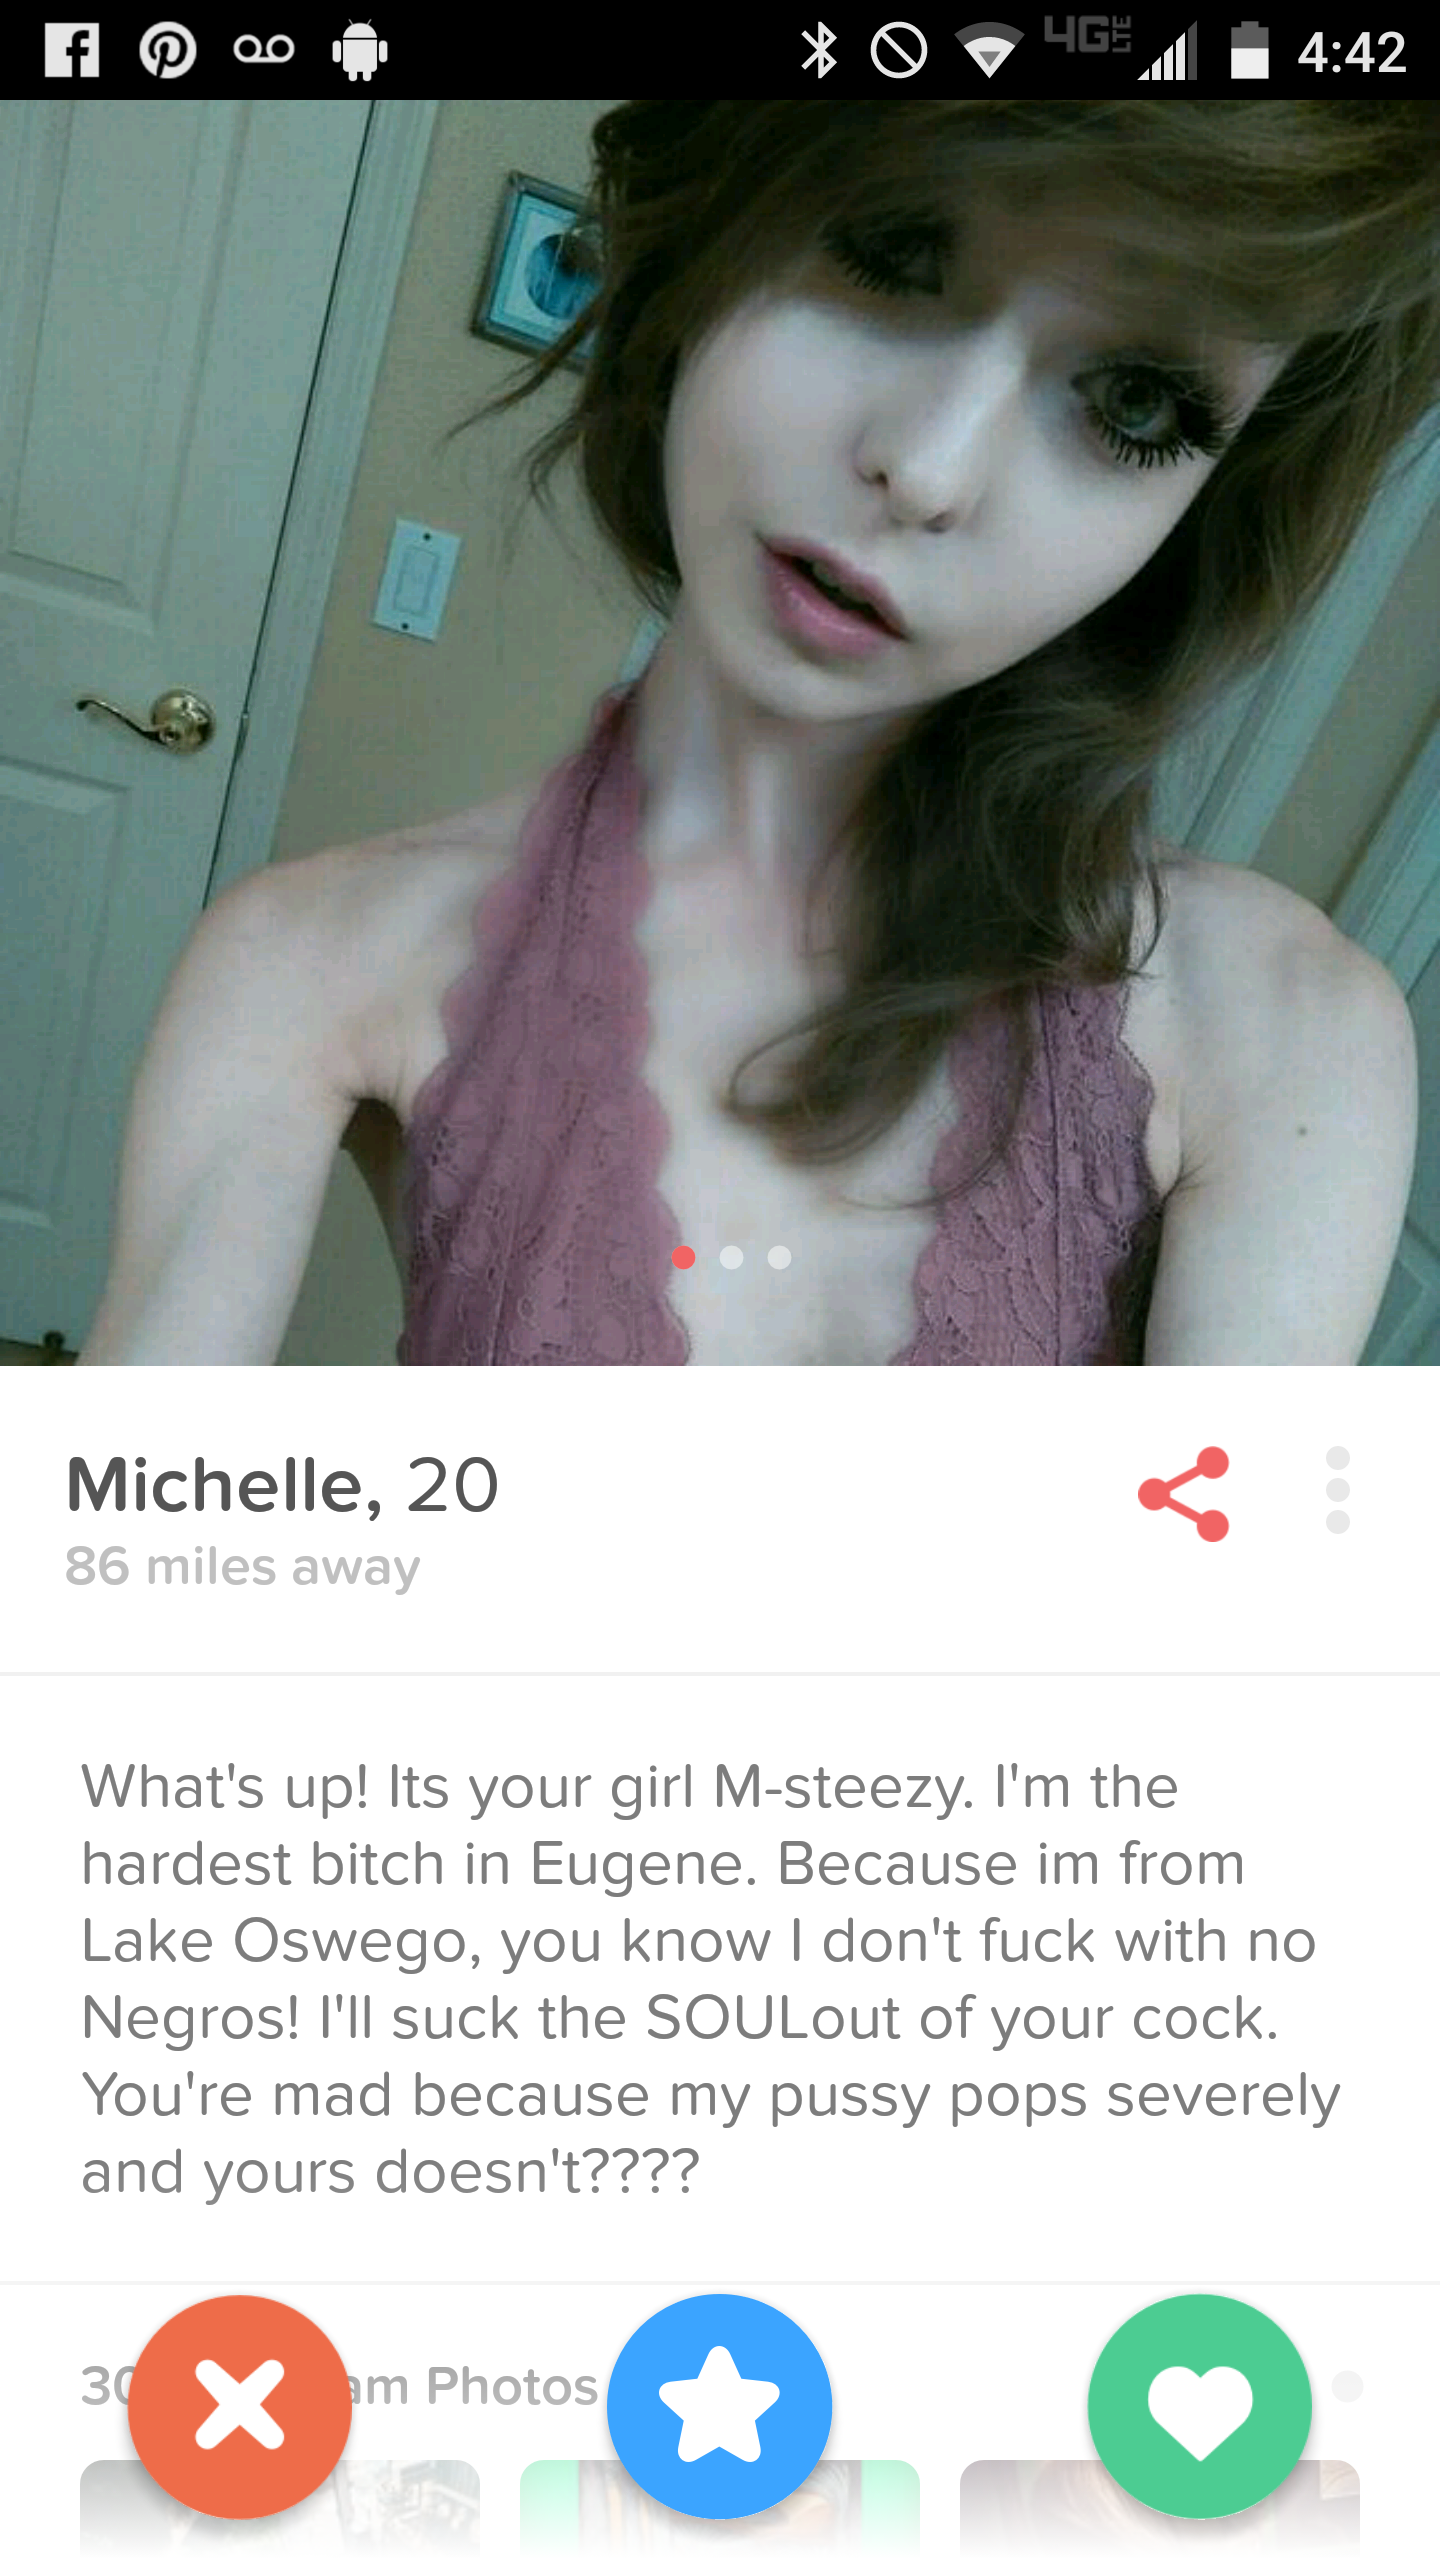 Funny tinder profile lines for dating 1